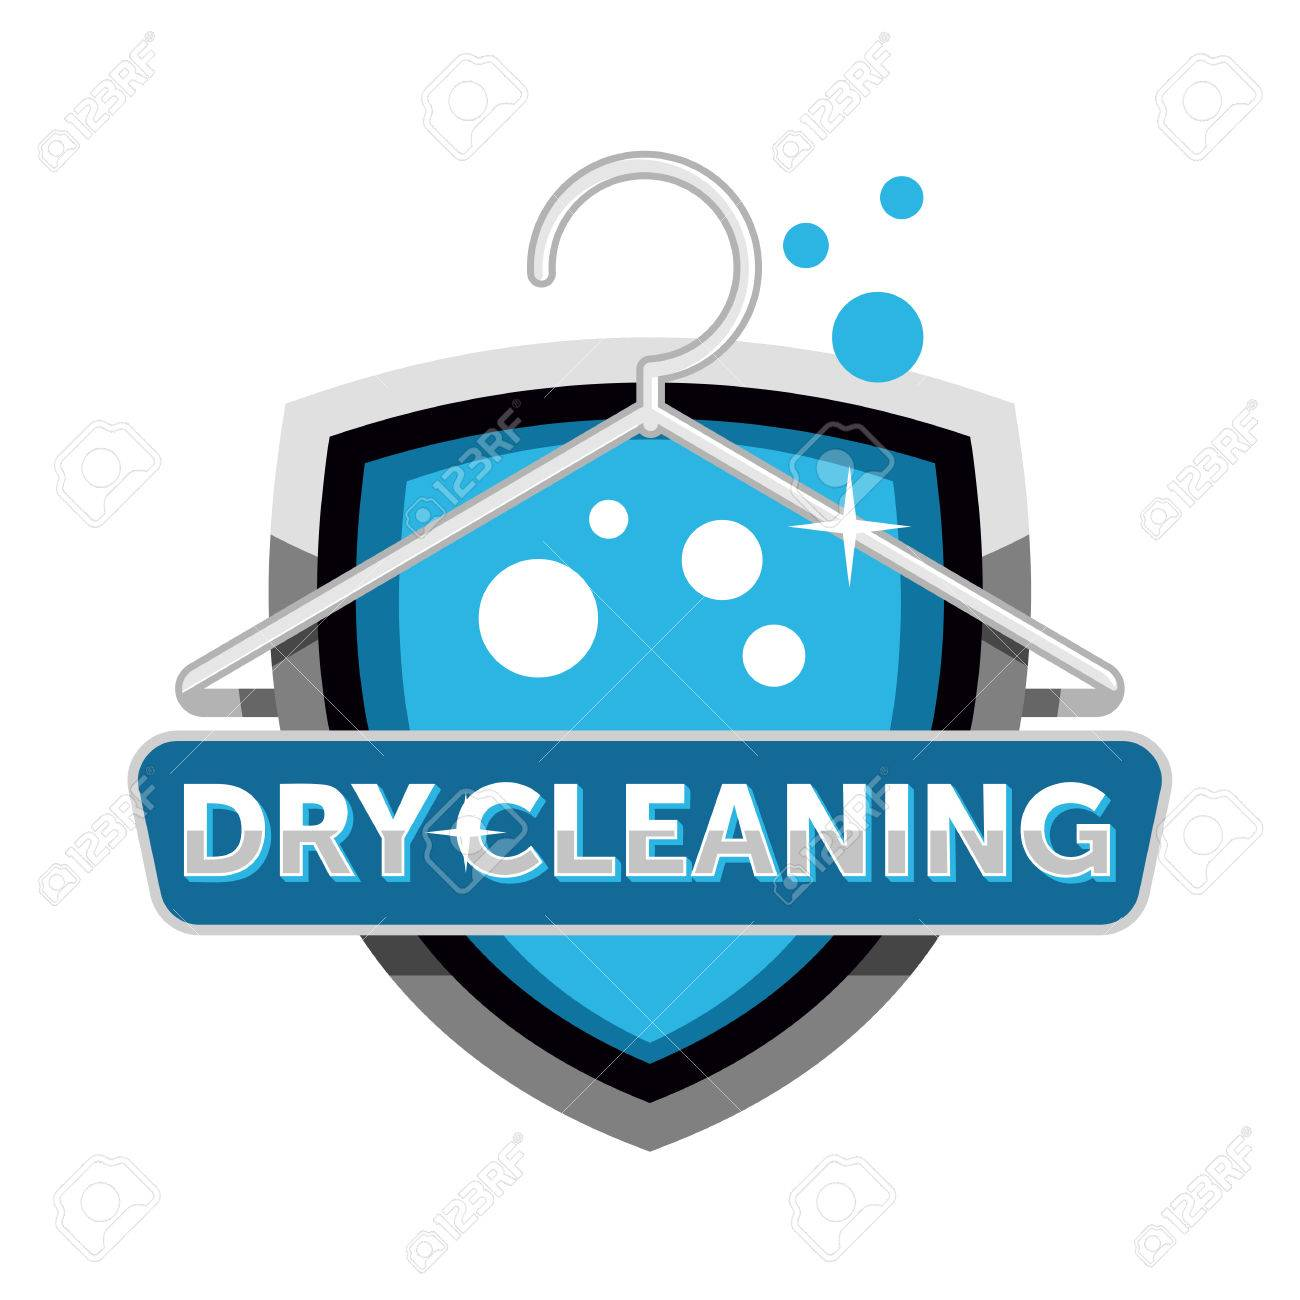 dry cleaning logo.